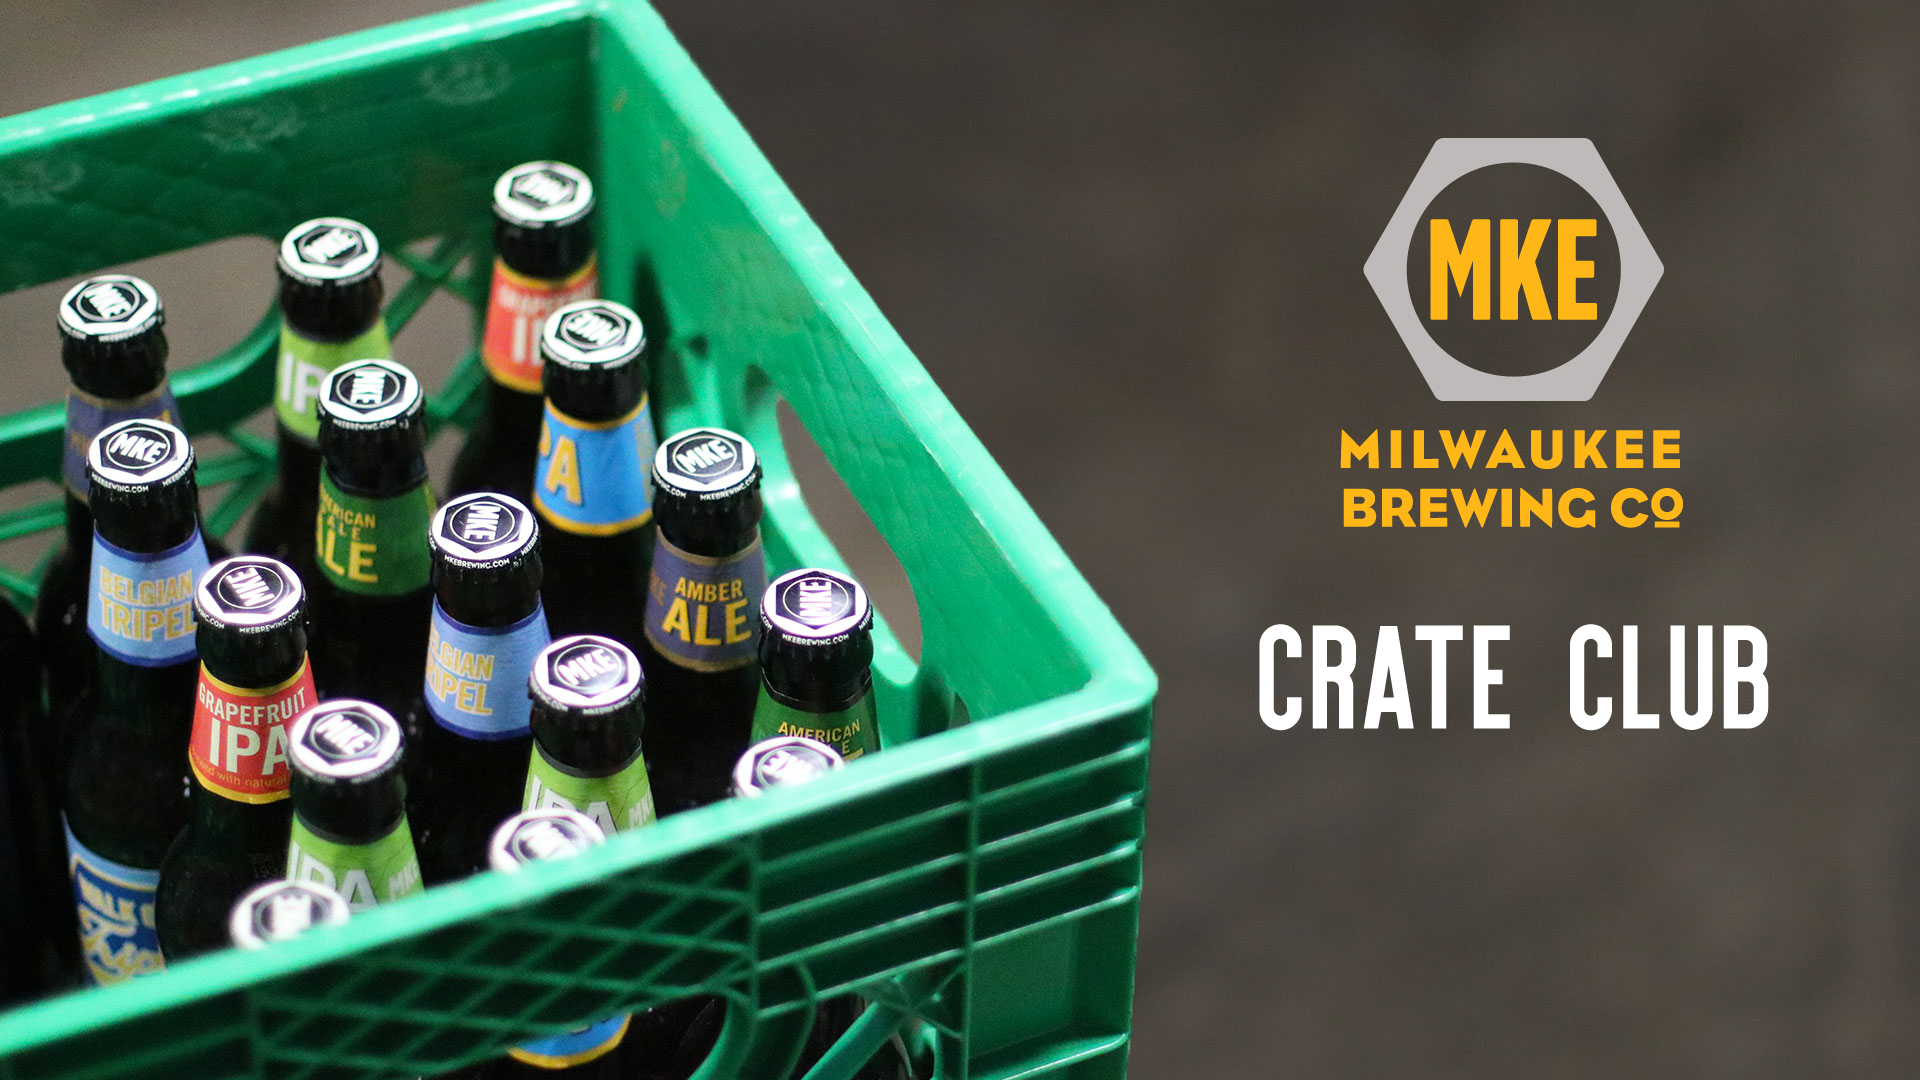 MKE Brewing Introduces Crate Club